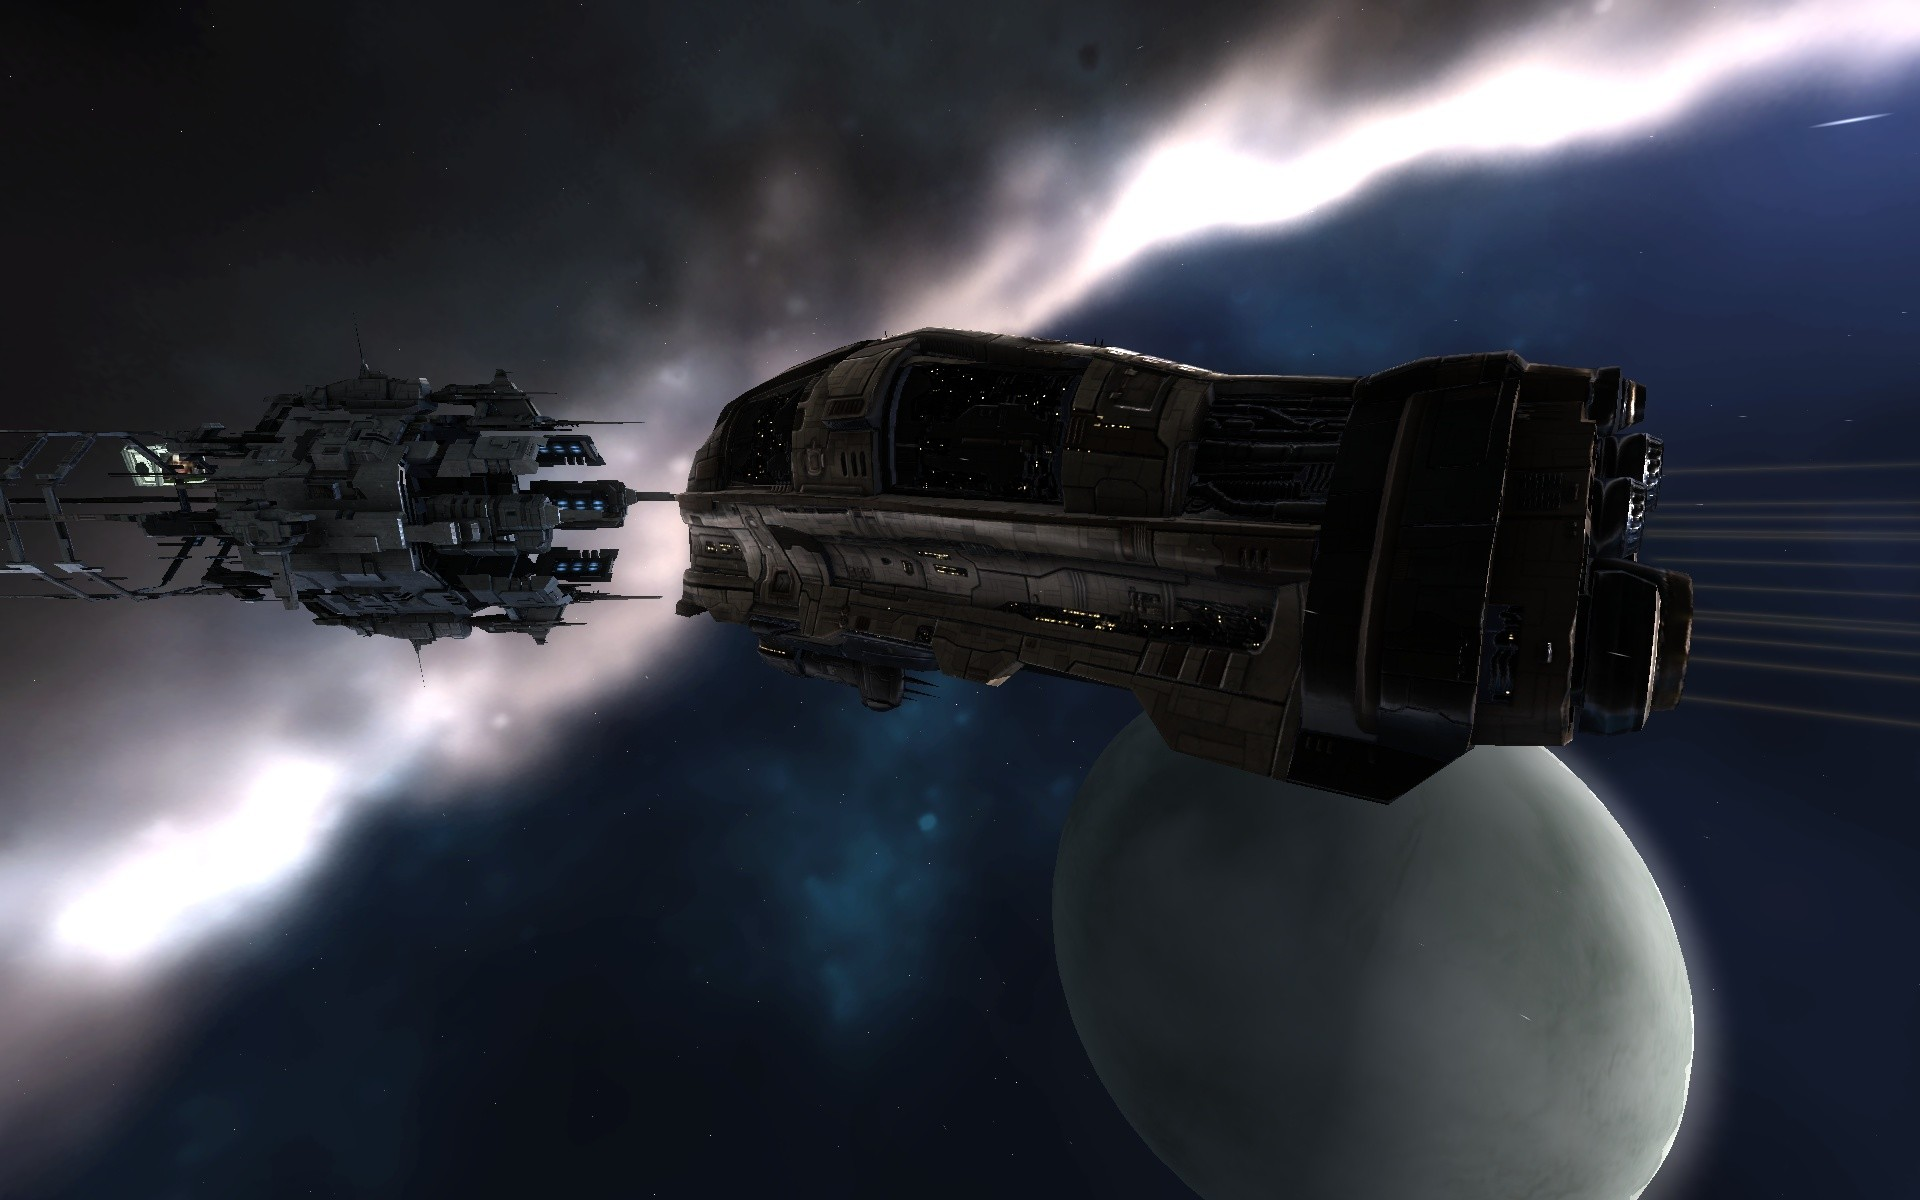 EVE Online - (New premium graphics) Amarr ship heading into a Caldari gate